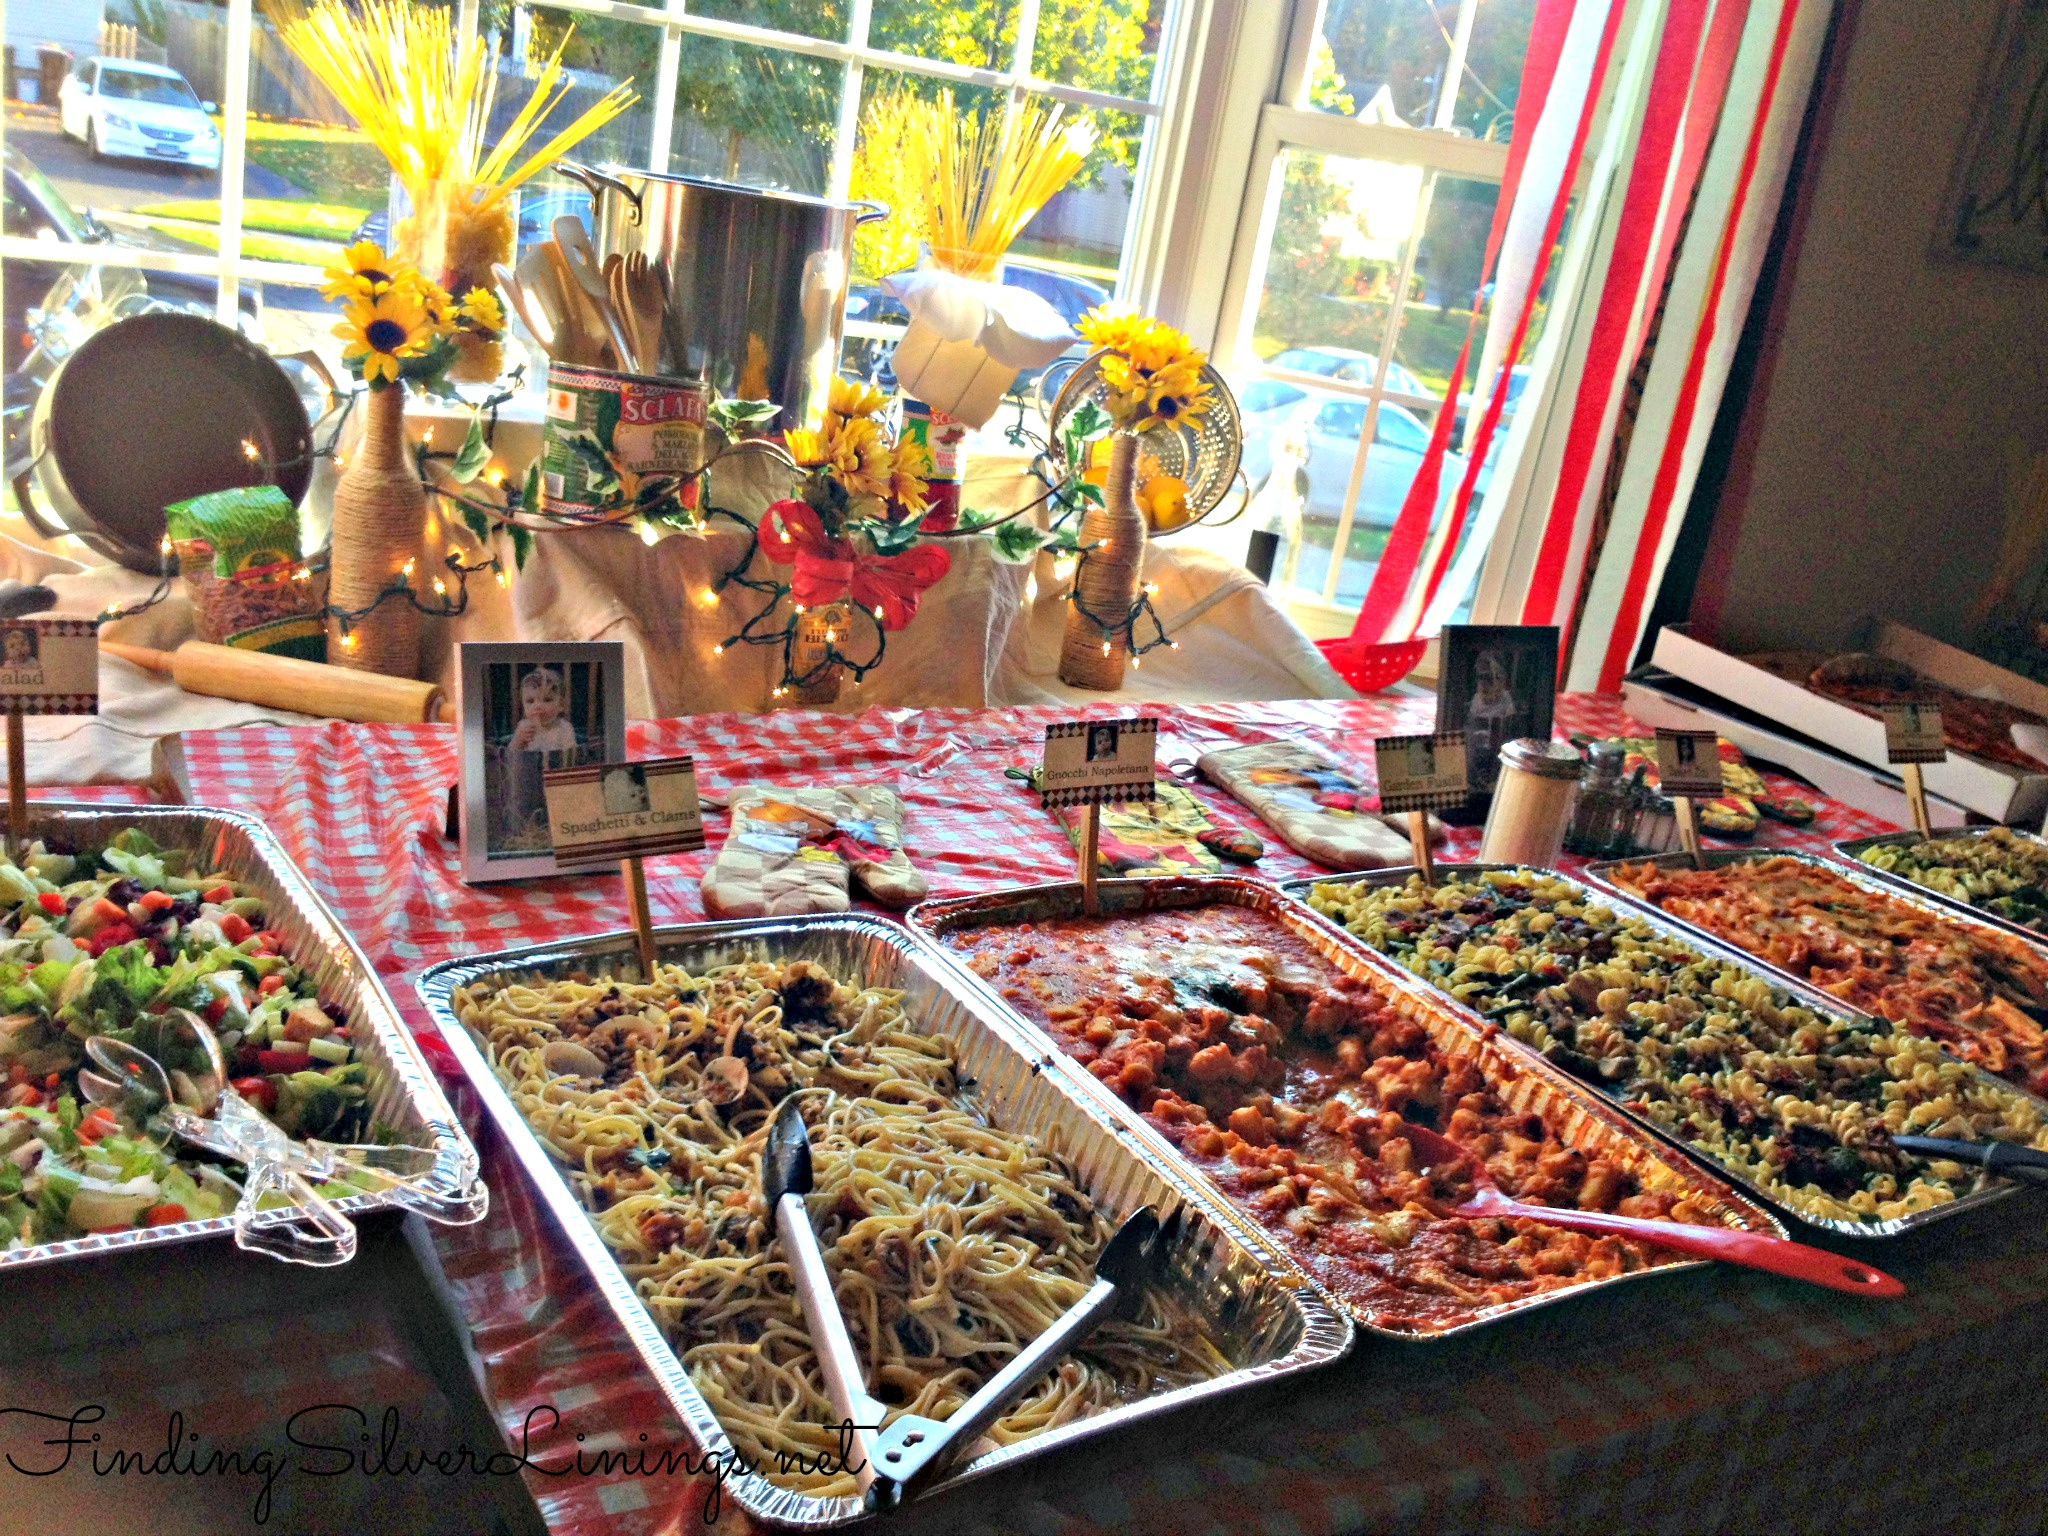 Max's Italian Themed Birthday Party | Finding Silver Linings